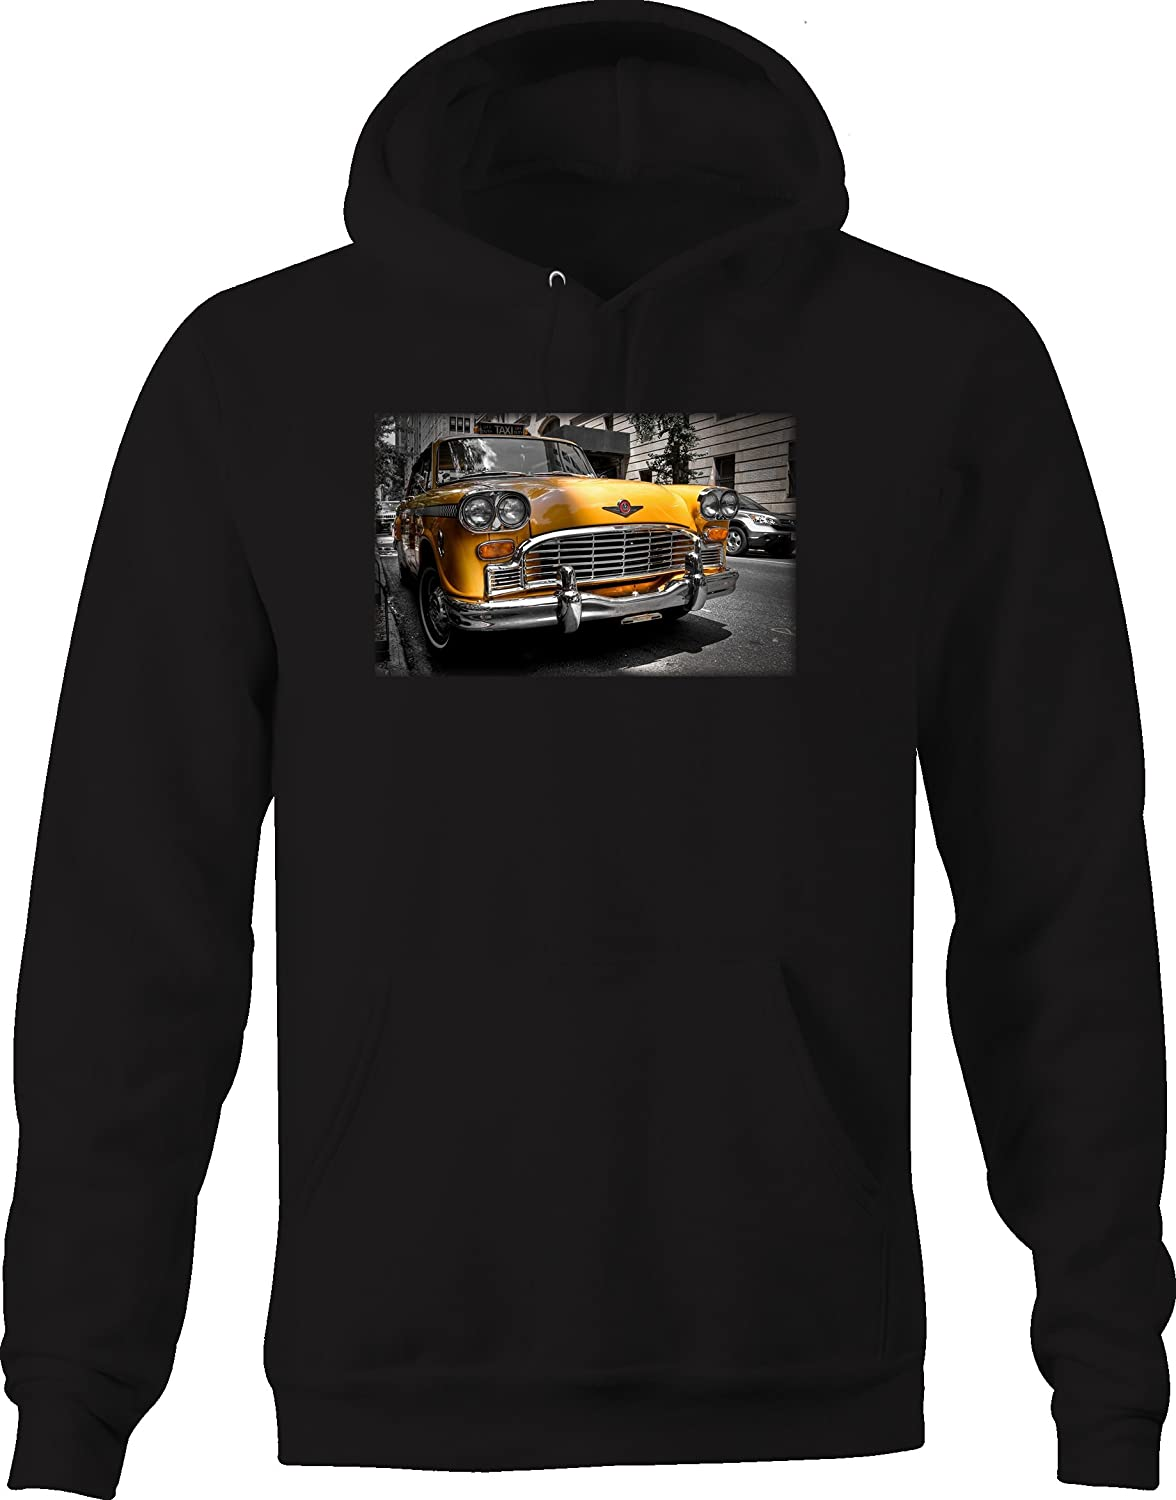 Classic Yellow Taxi Cab Hotrod Vintage Retro Automotive Art Hoodie for Men